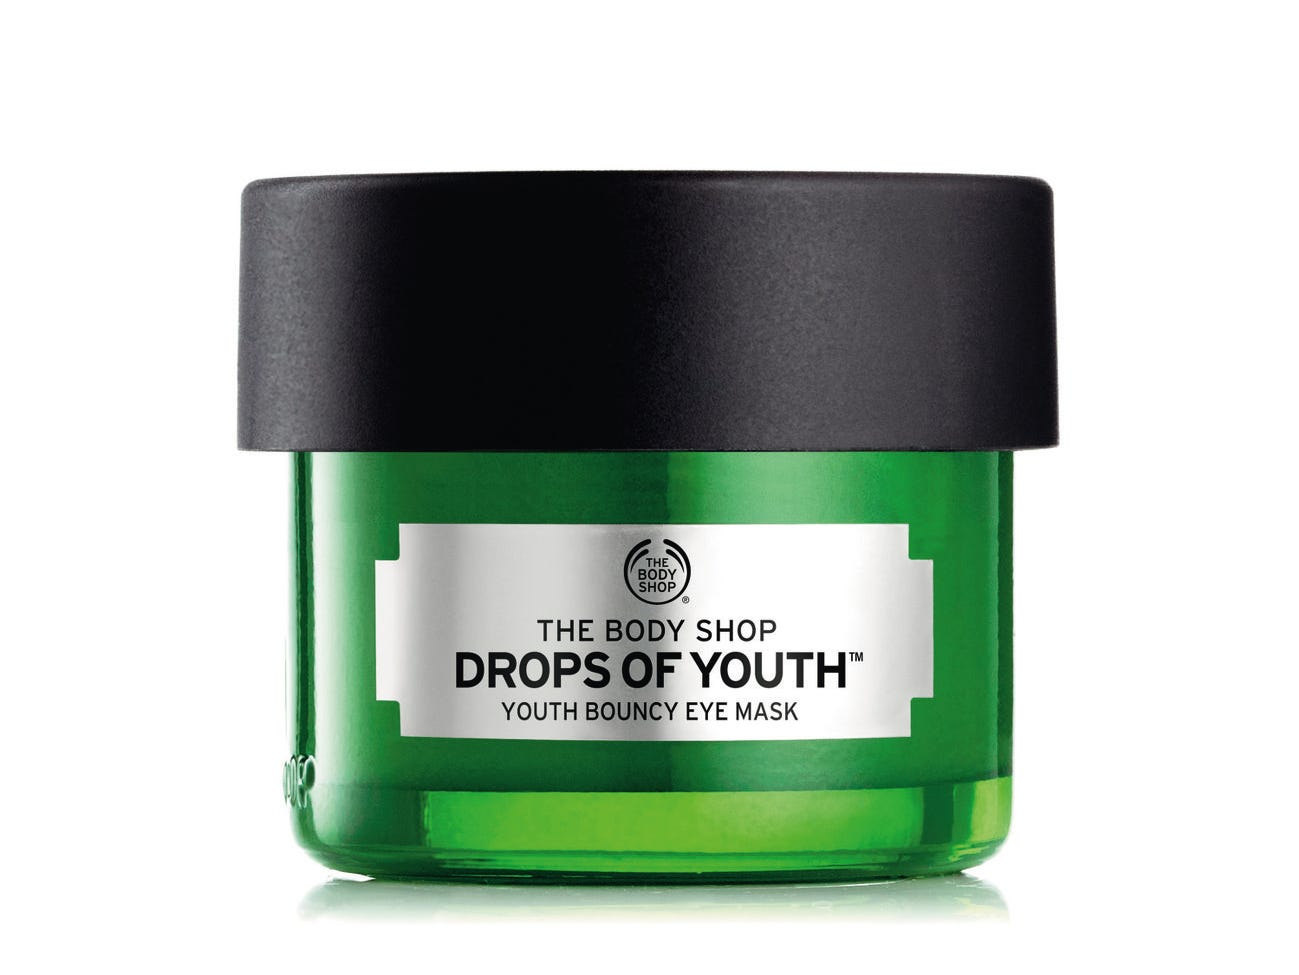 Body Shop Youth Bouncy Eye Mask can be used a night mask or applied as a thin layer under daily makeup. It left our tester with noticeably deflated under eye bags.